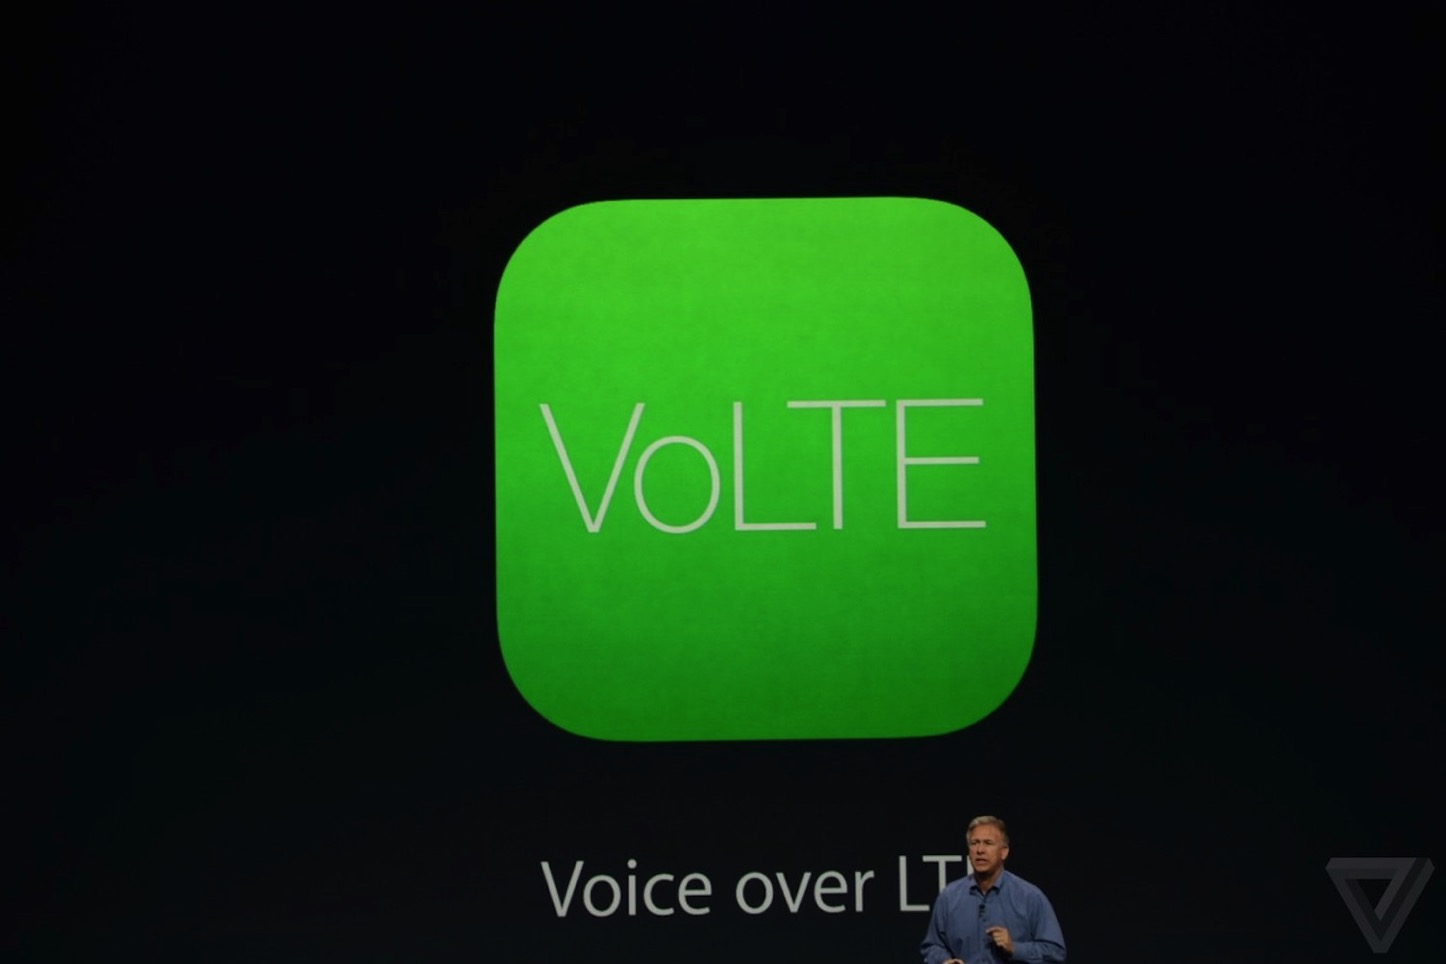 VoLTE for iPhone